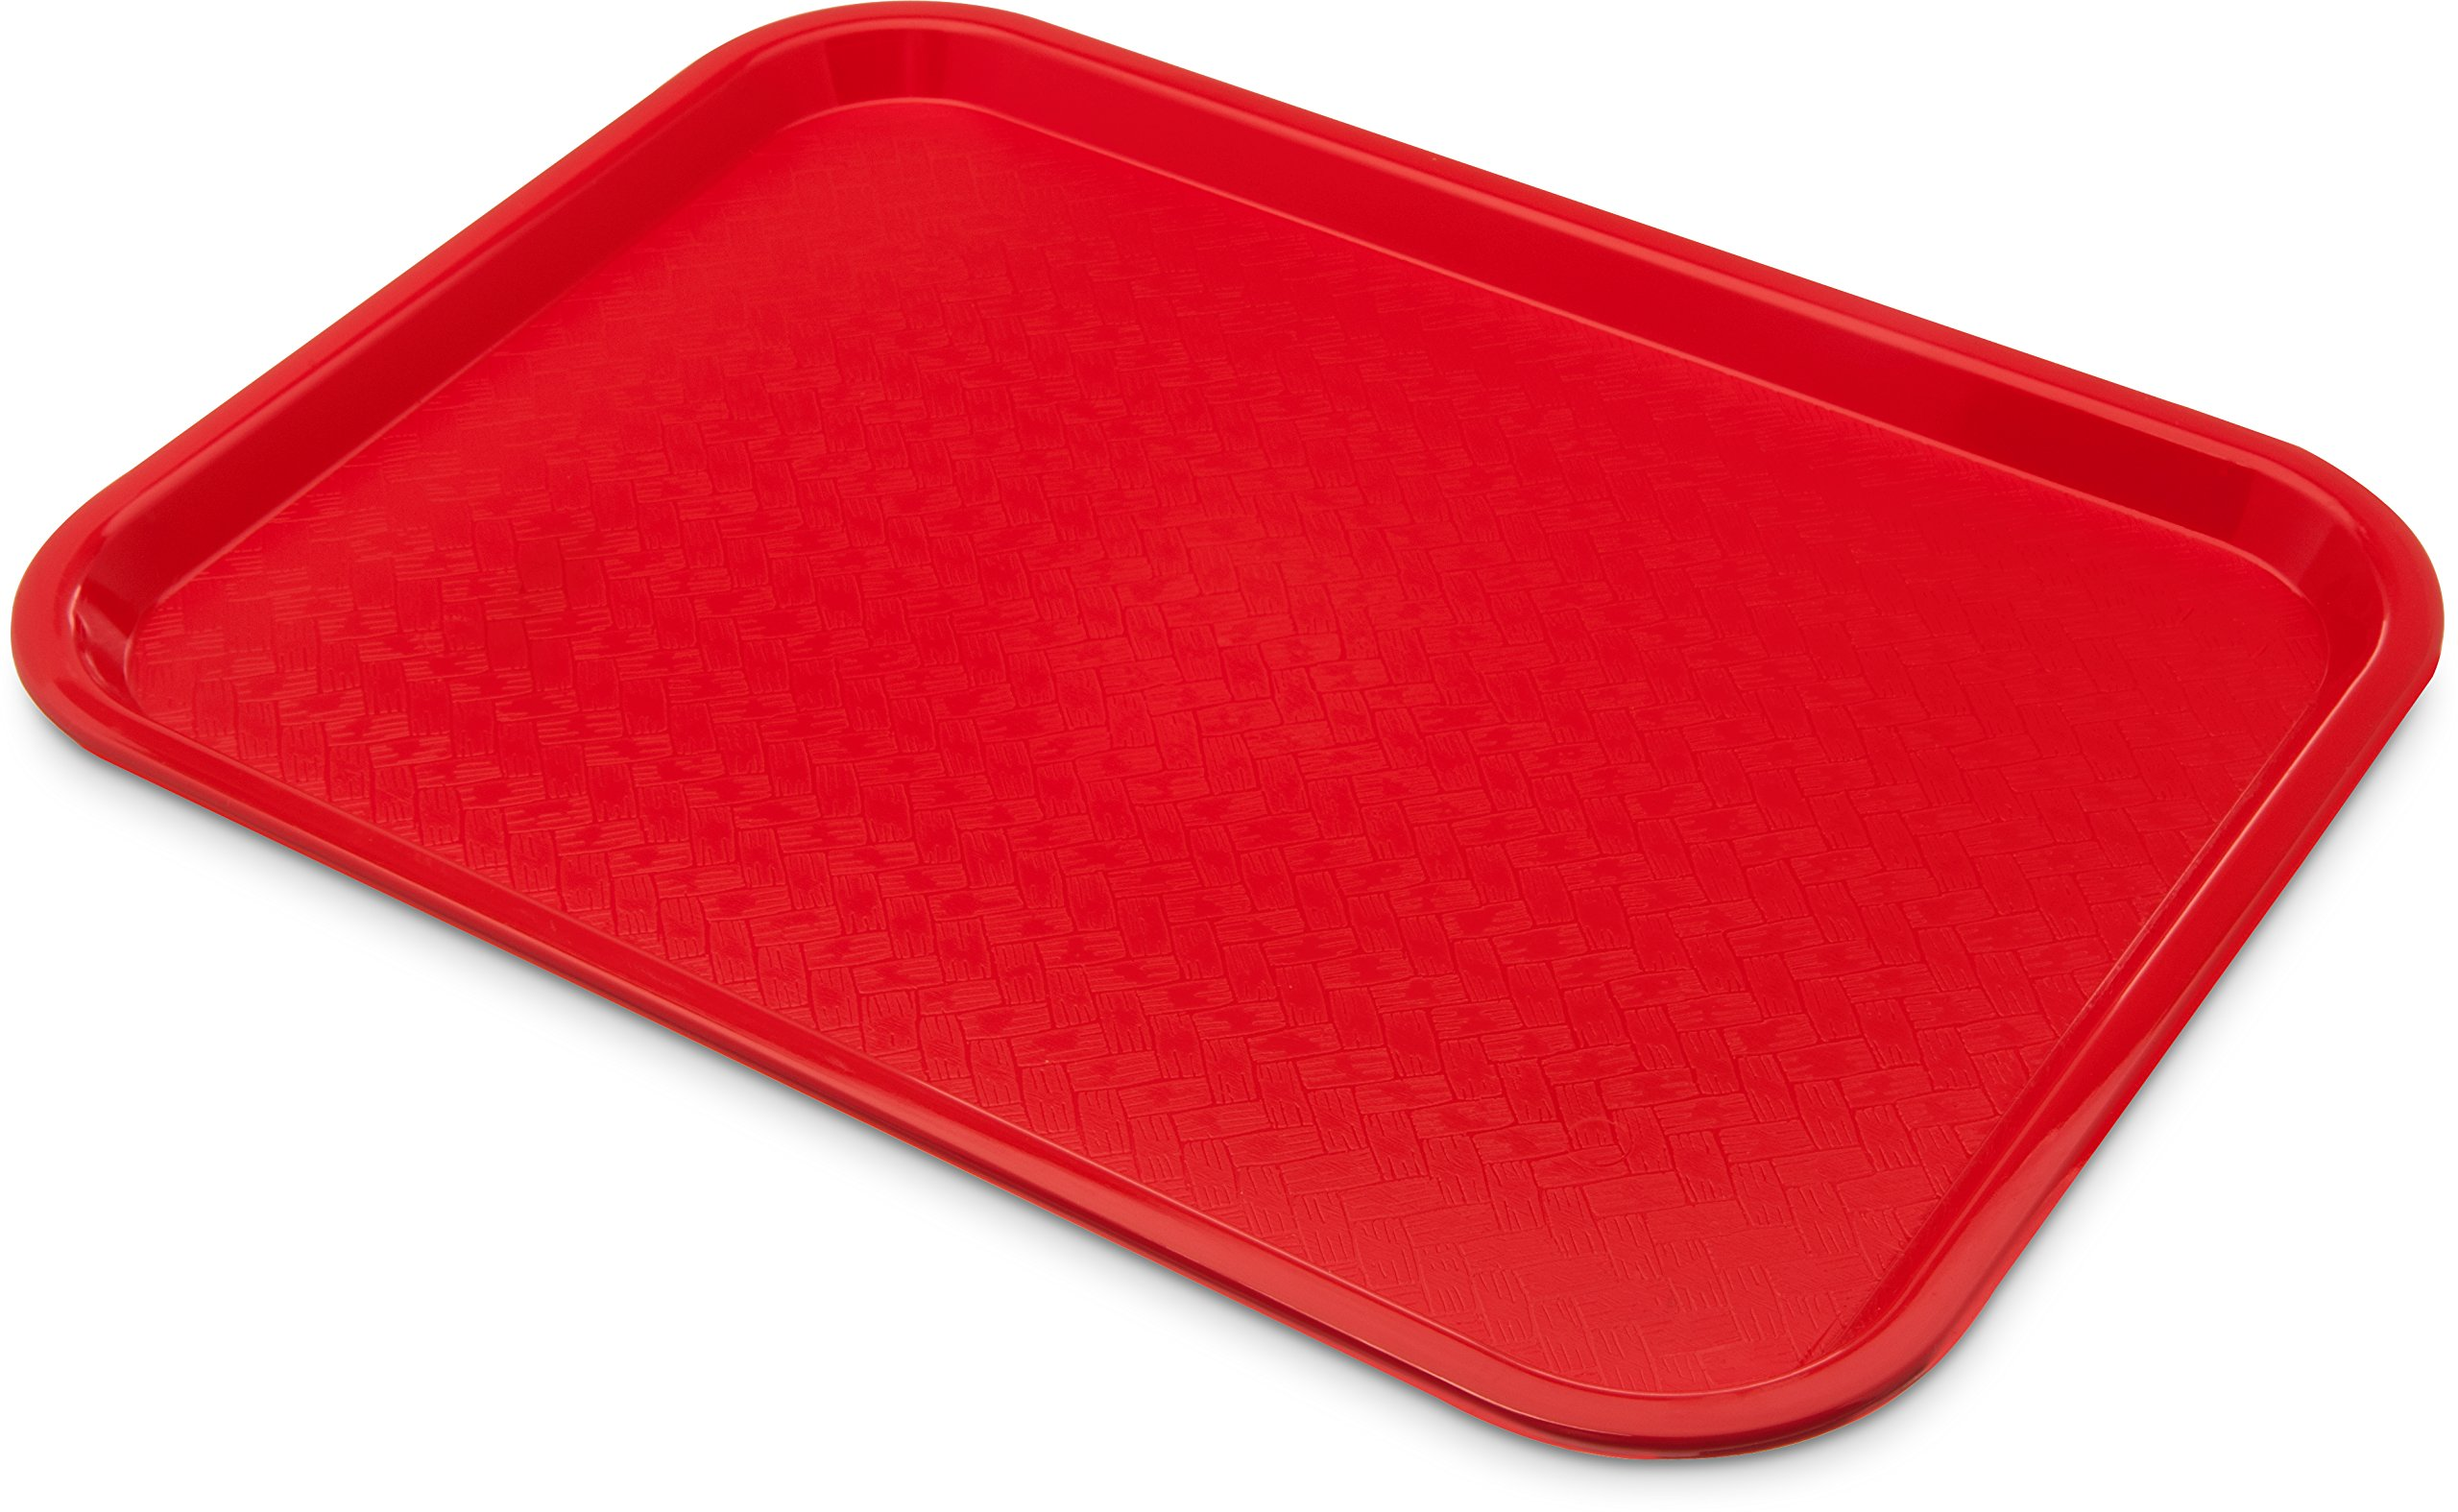 Carlisle CT1216-8105 Café Standard Cafeteria / Fast Food Tray, 12'' x 16'', Red (Pack of 6) by Carlisle